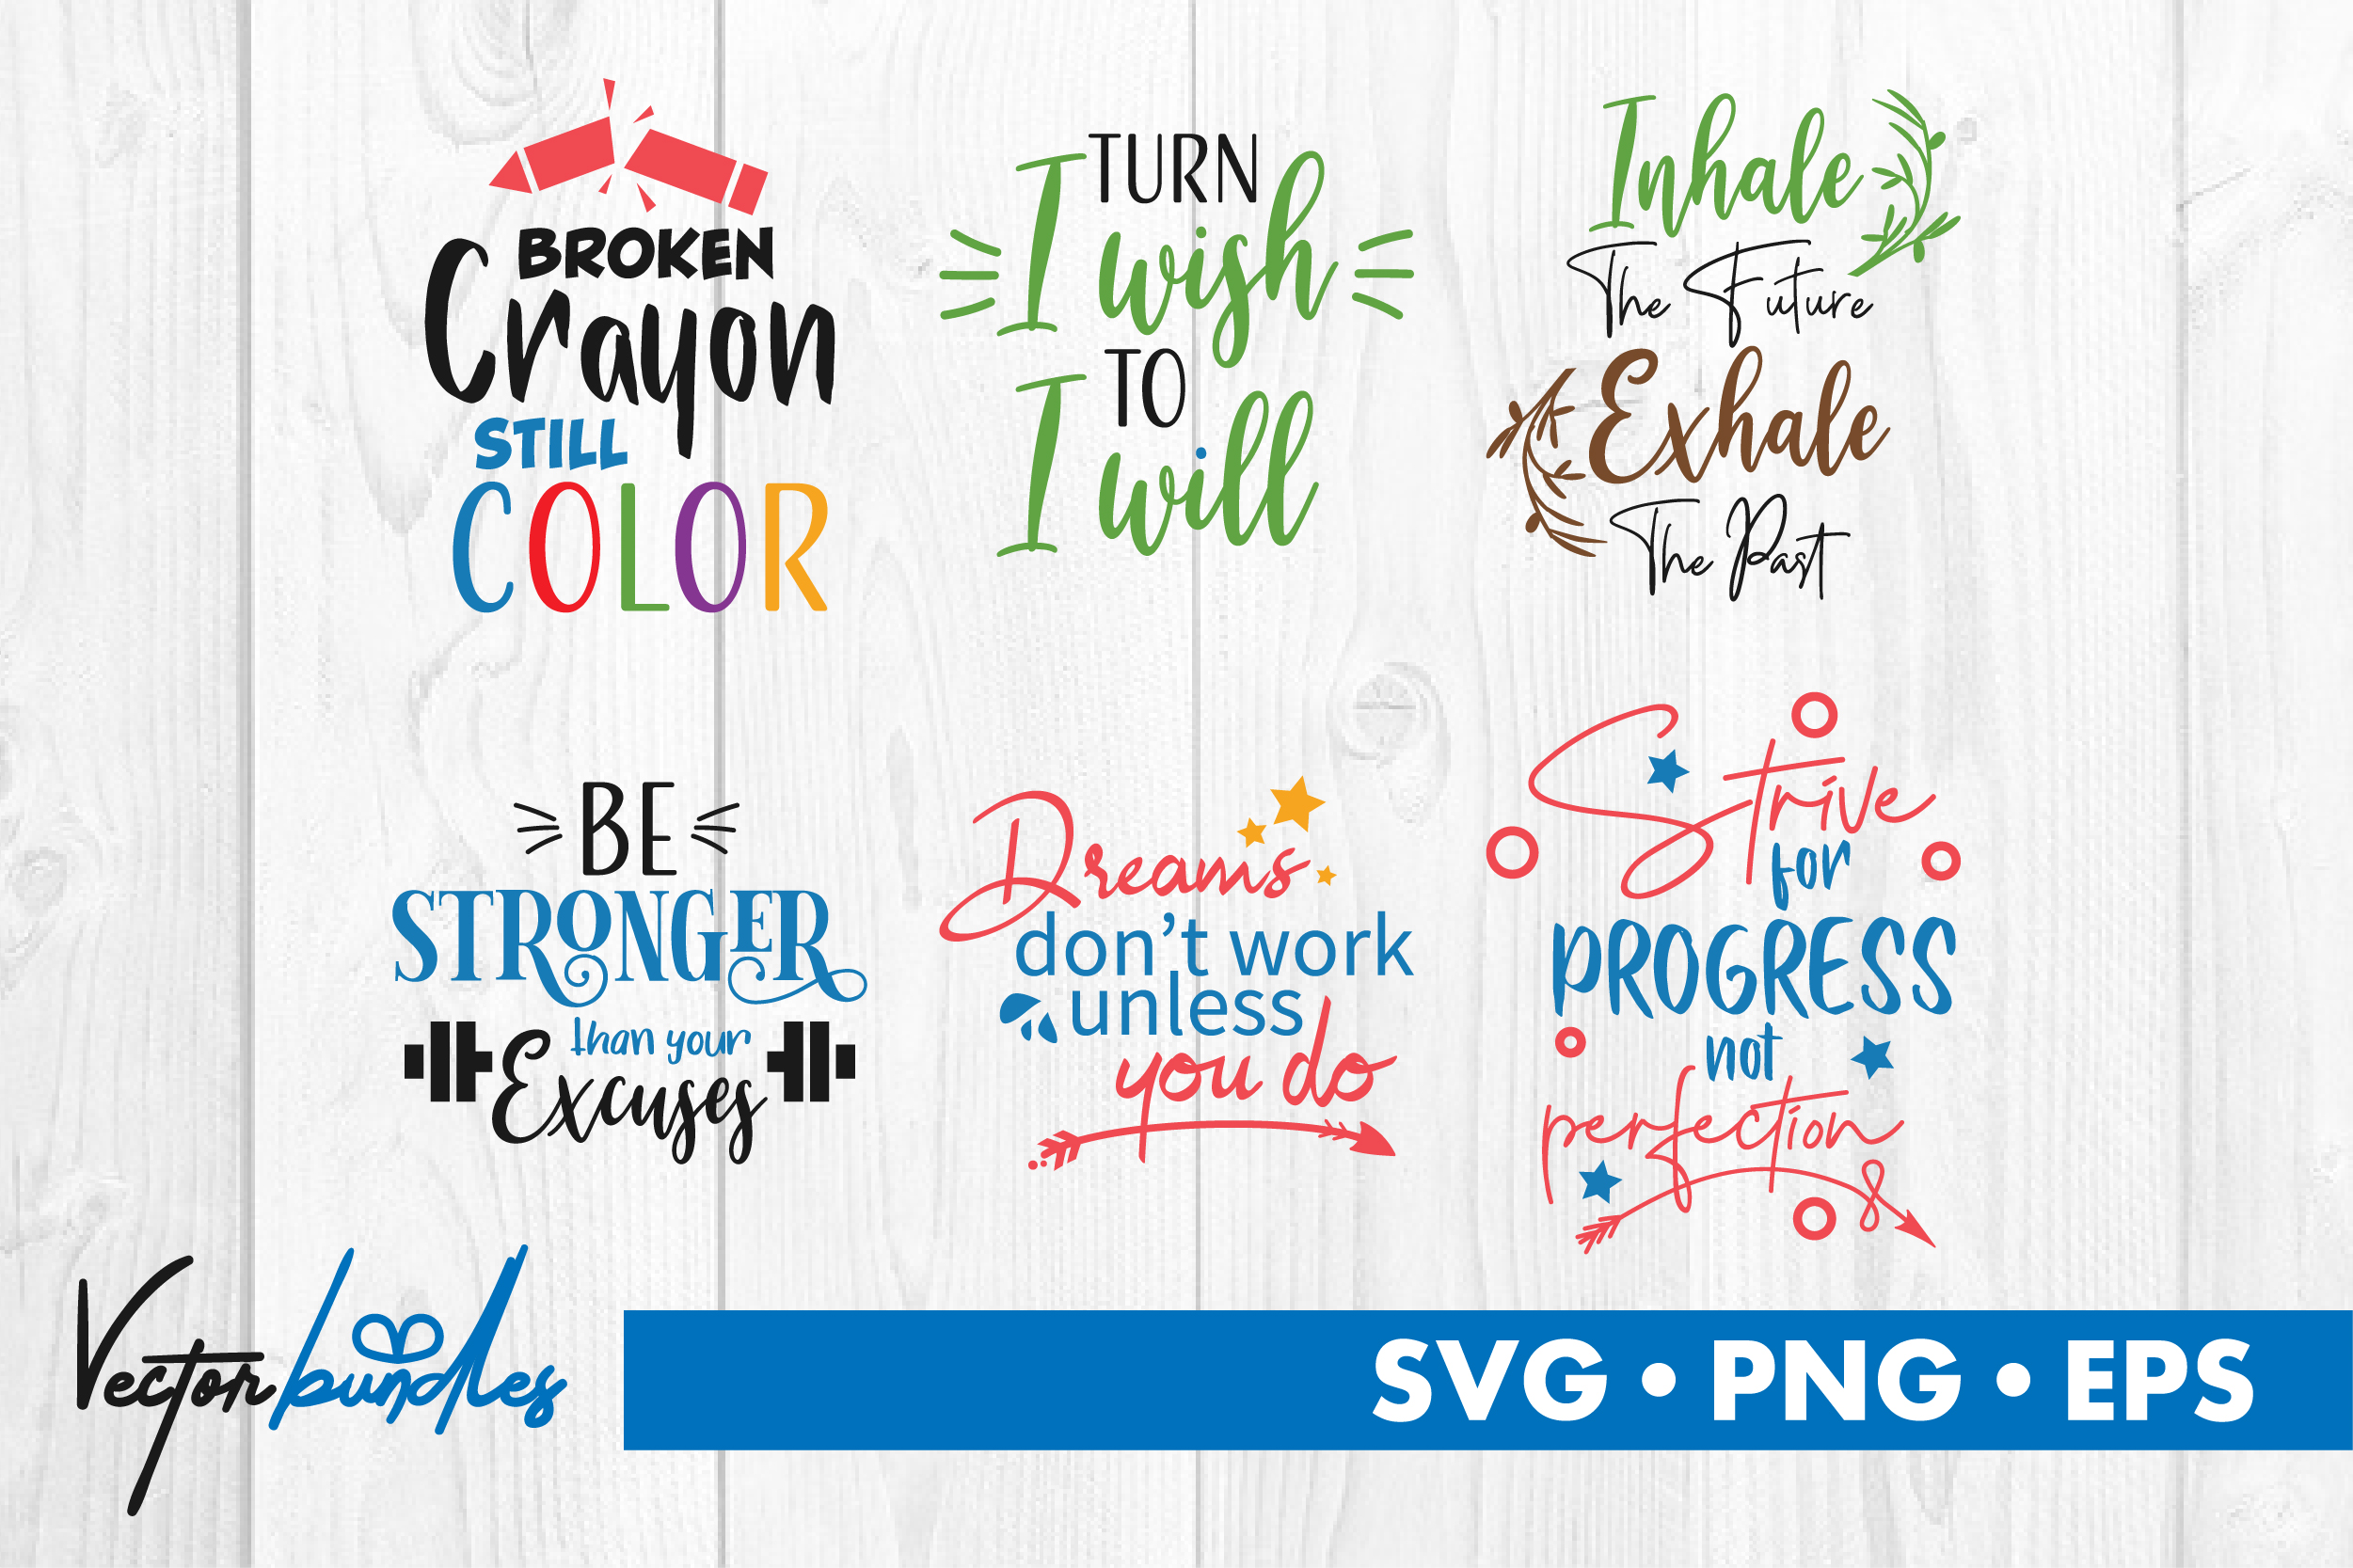 Download Free Motivational Quotes Graphic By Vectorbundles Creative Fabrica for Cricut Explore, Silhouette and other cutting machines.